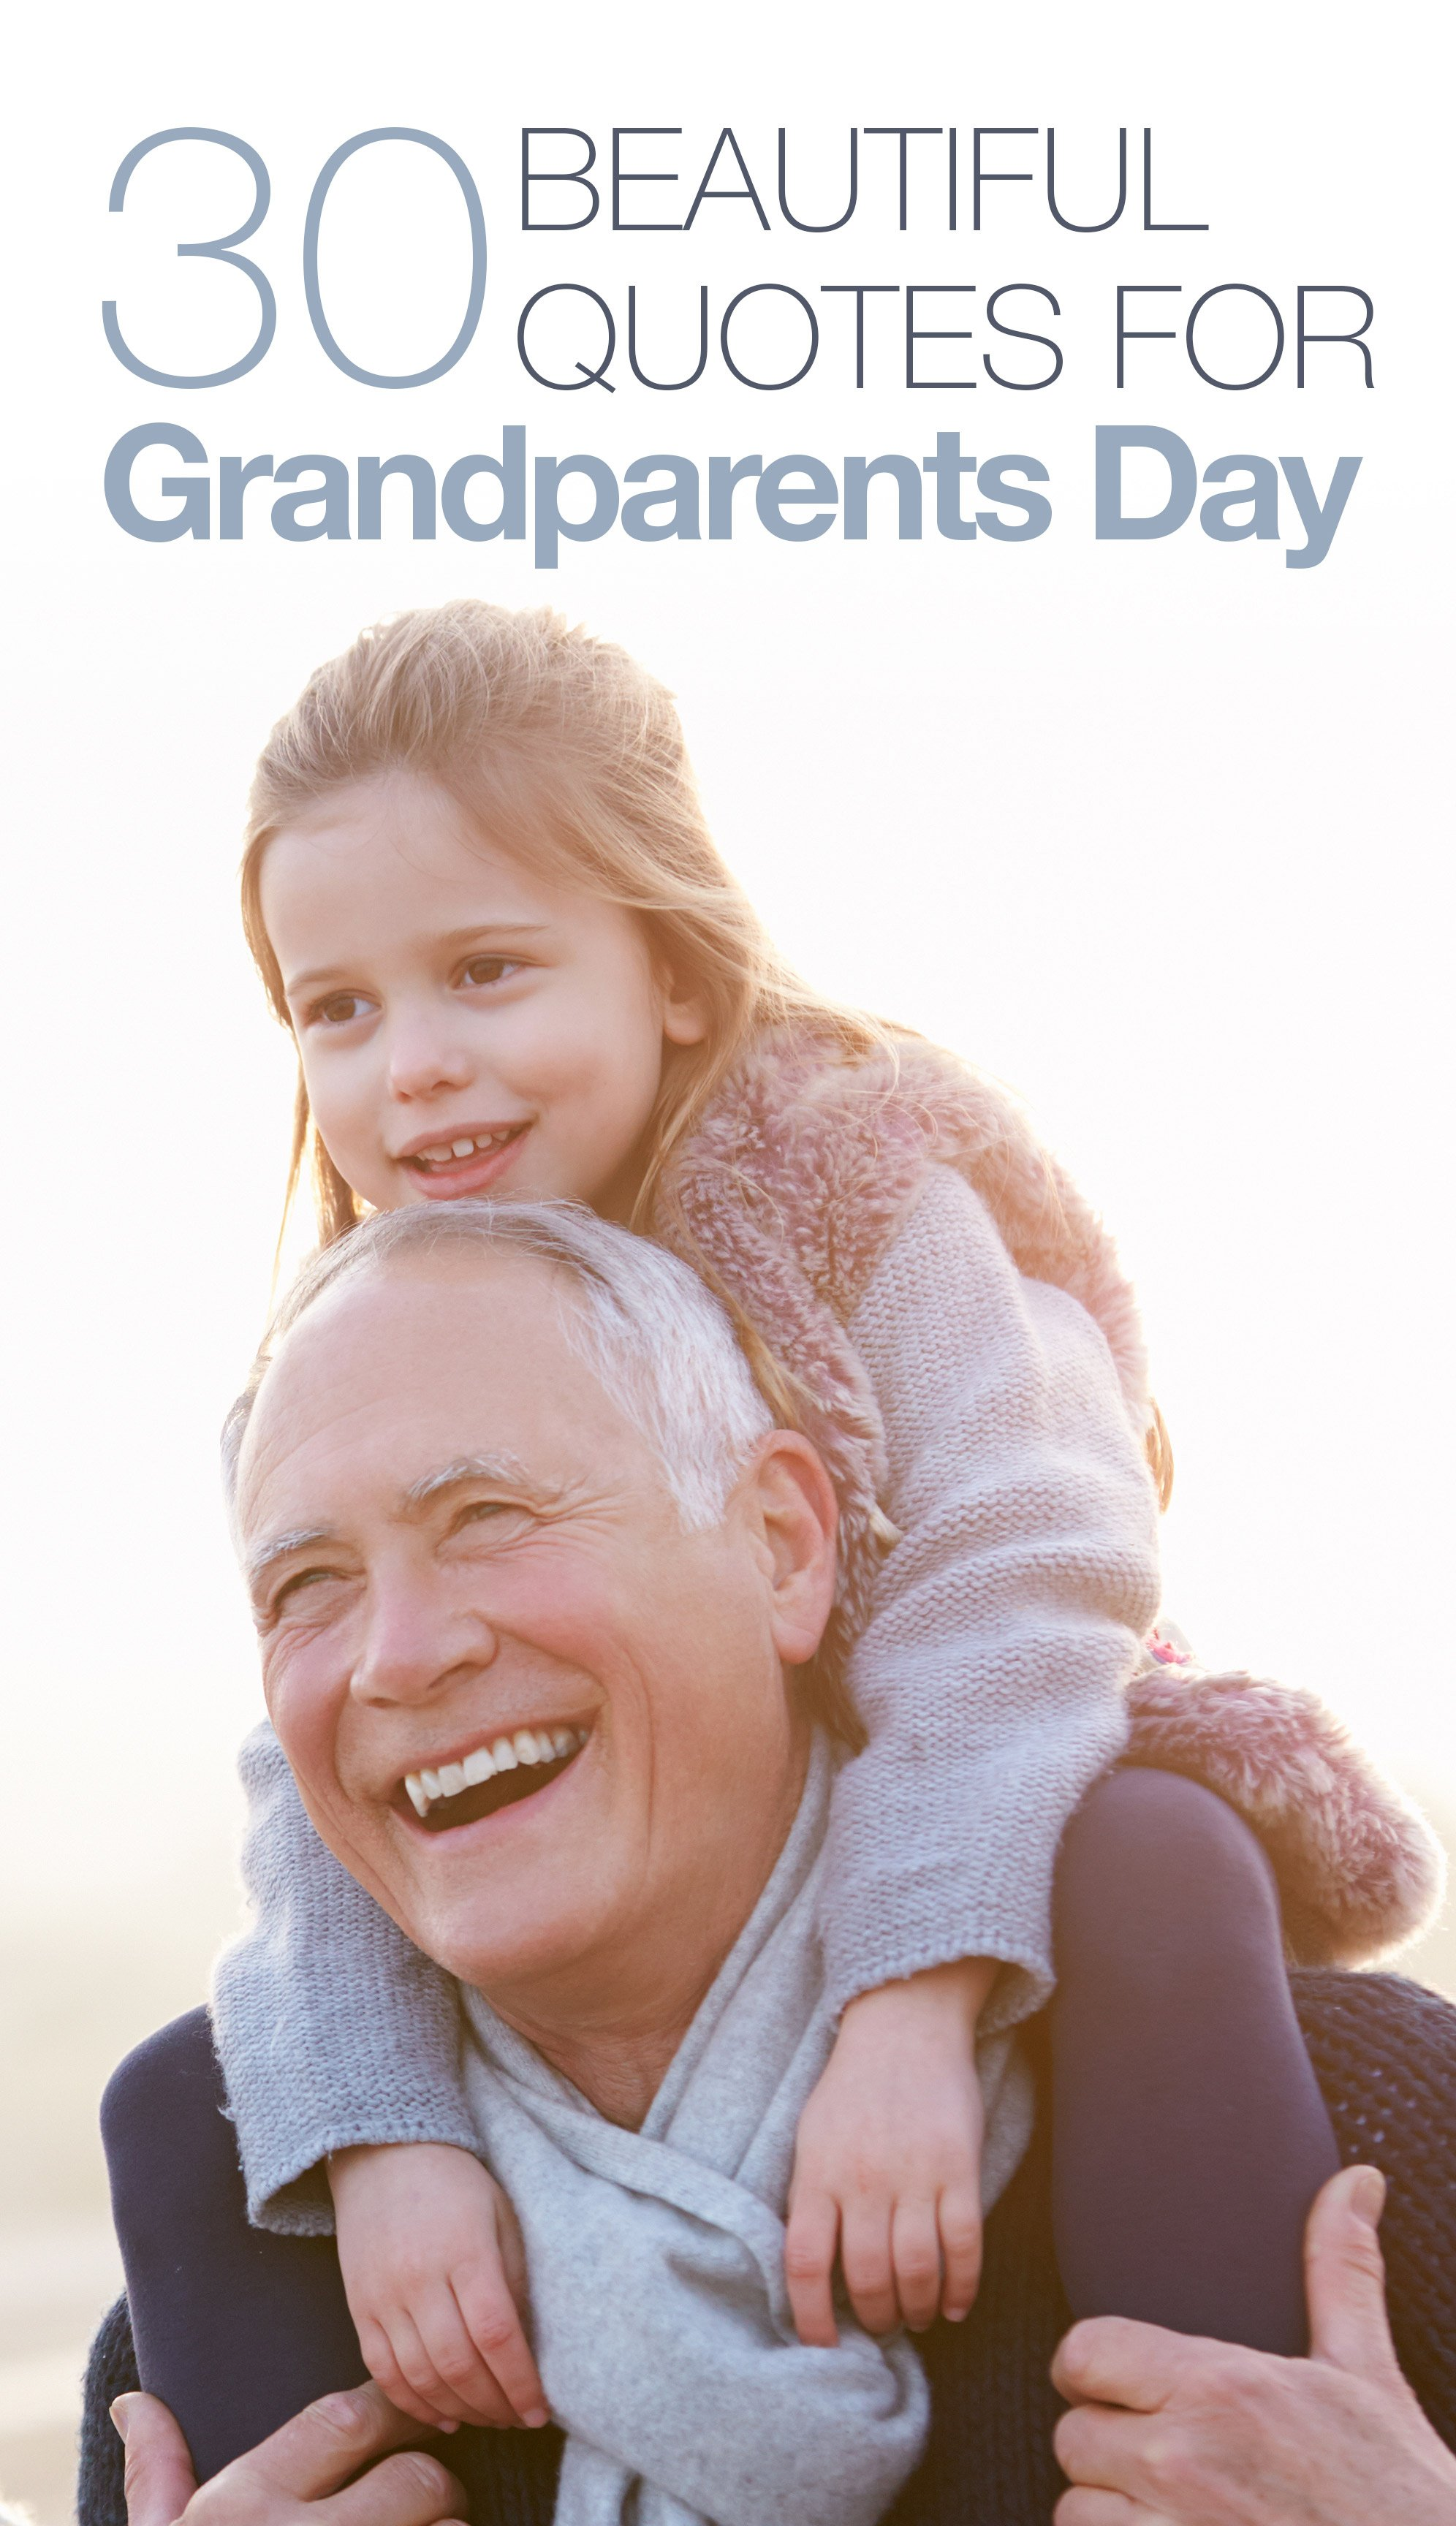 grandparents day quotes - HD1992×3456